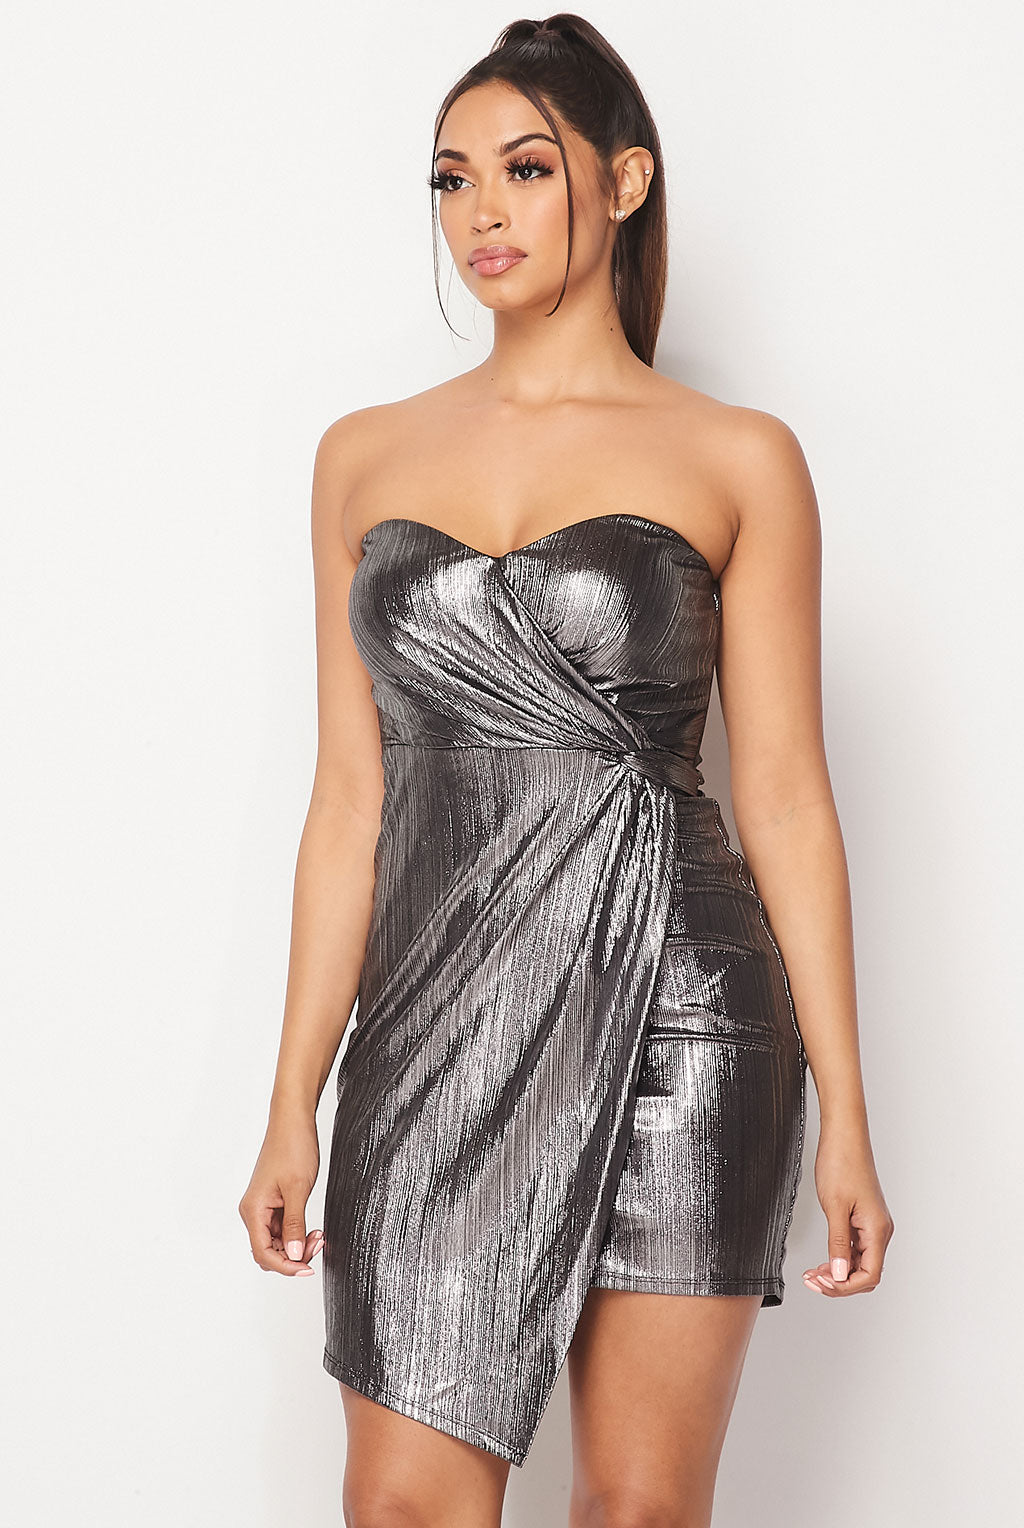 Teeze Me | Strapless Side Wrap Metallic Dress | Silver/Black